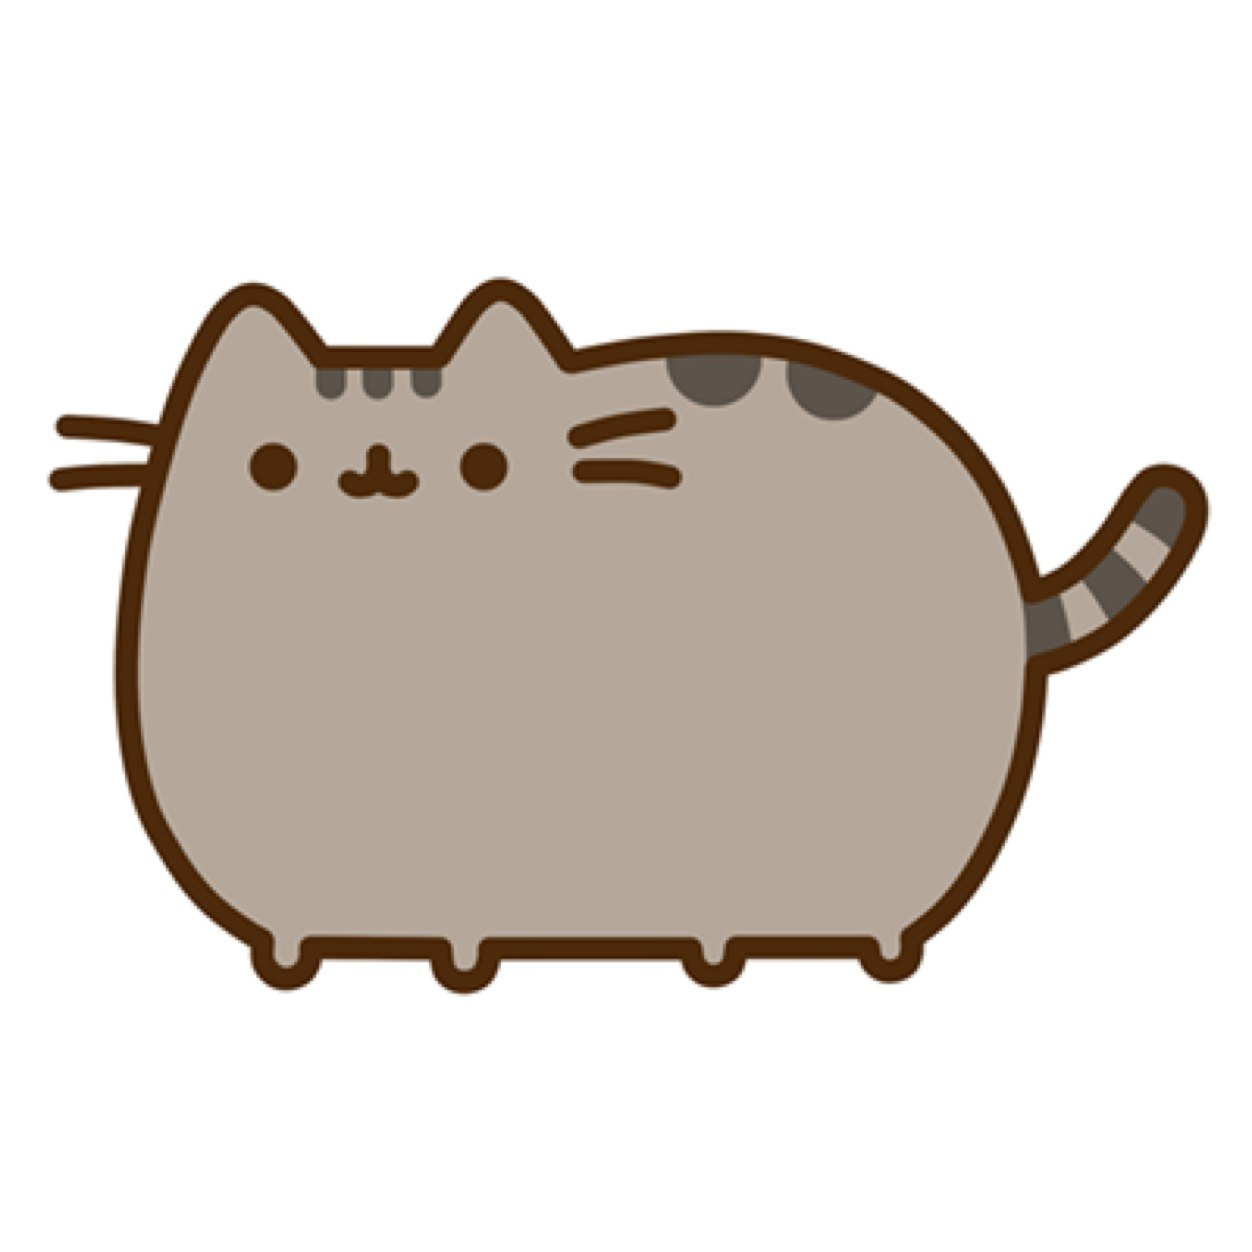 Pusheen The Cat Nicknametaken97